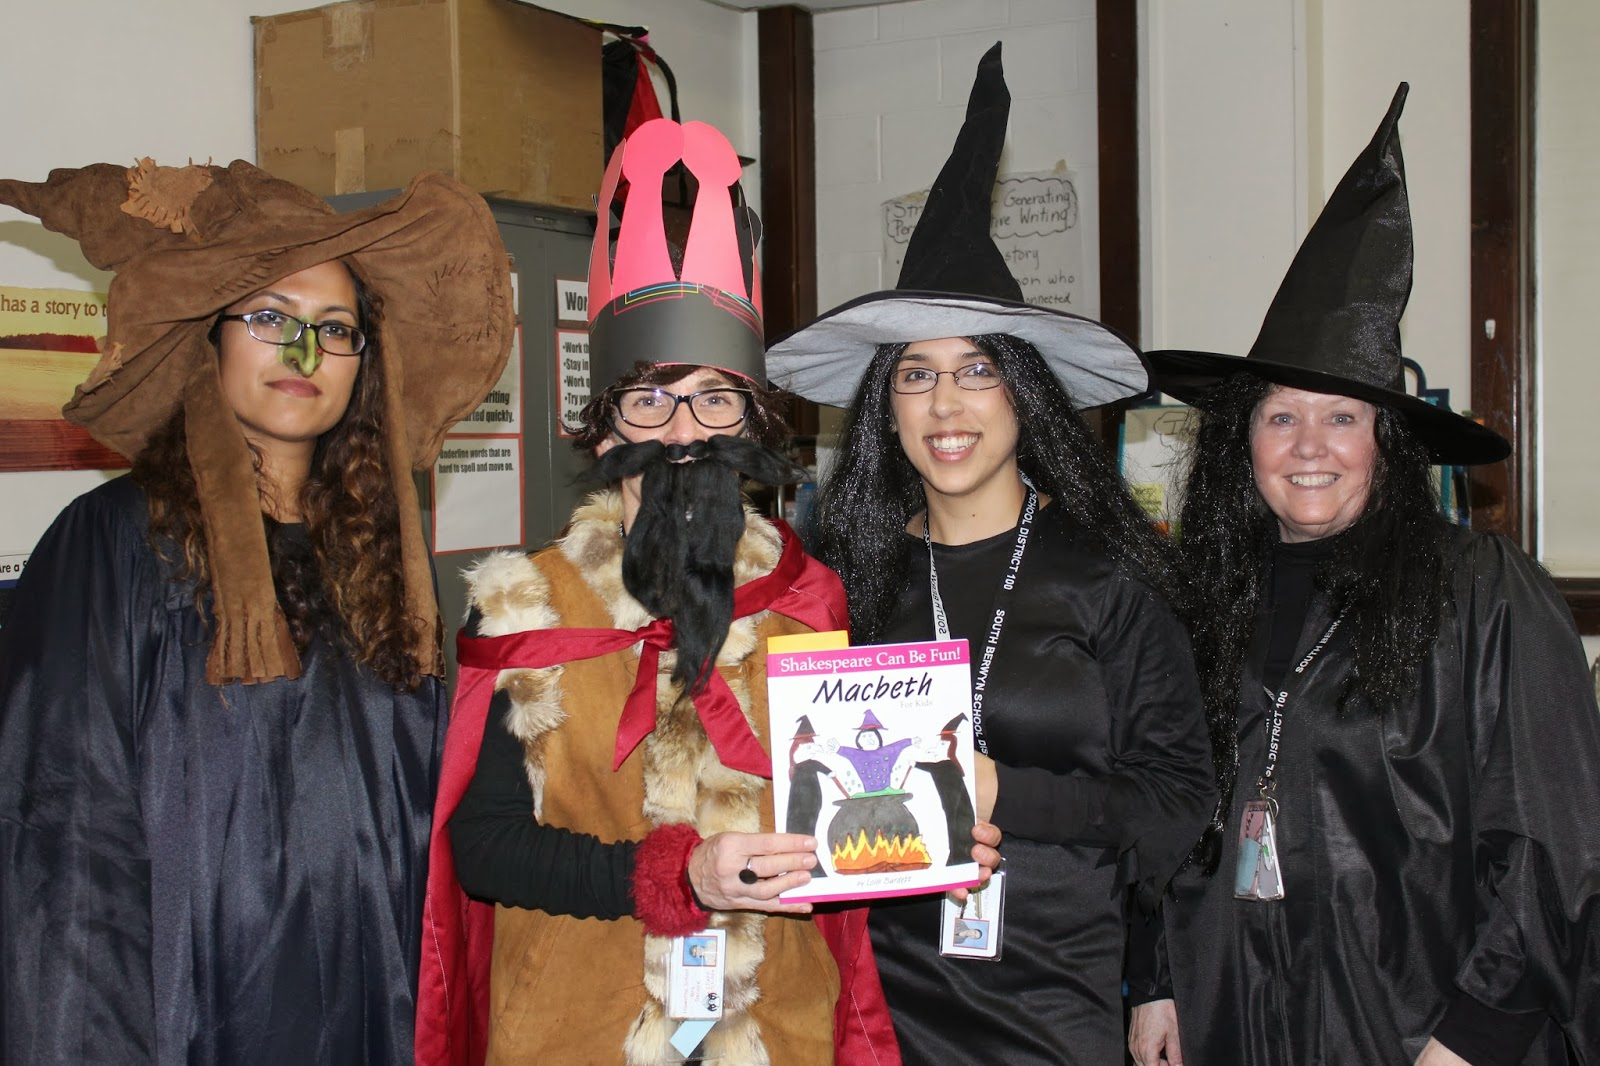 How do Hiawatha teachers celebrate Halloween? With a good book! ) We had quite a few literacy themed Halloween costumes this year!  sc 1 st  Hiawatha Husky Pride & Hiawatha Husky Pride: Halloween Book Characters